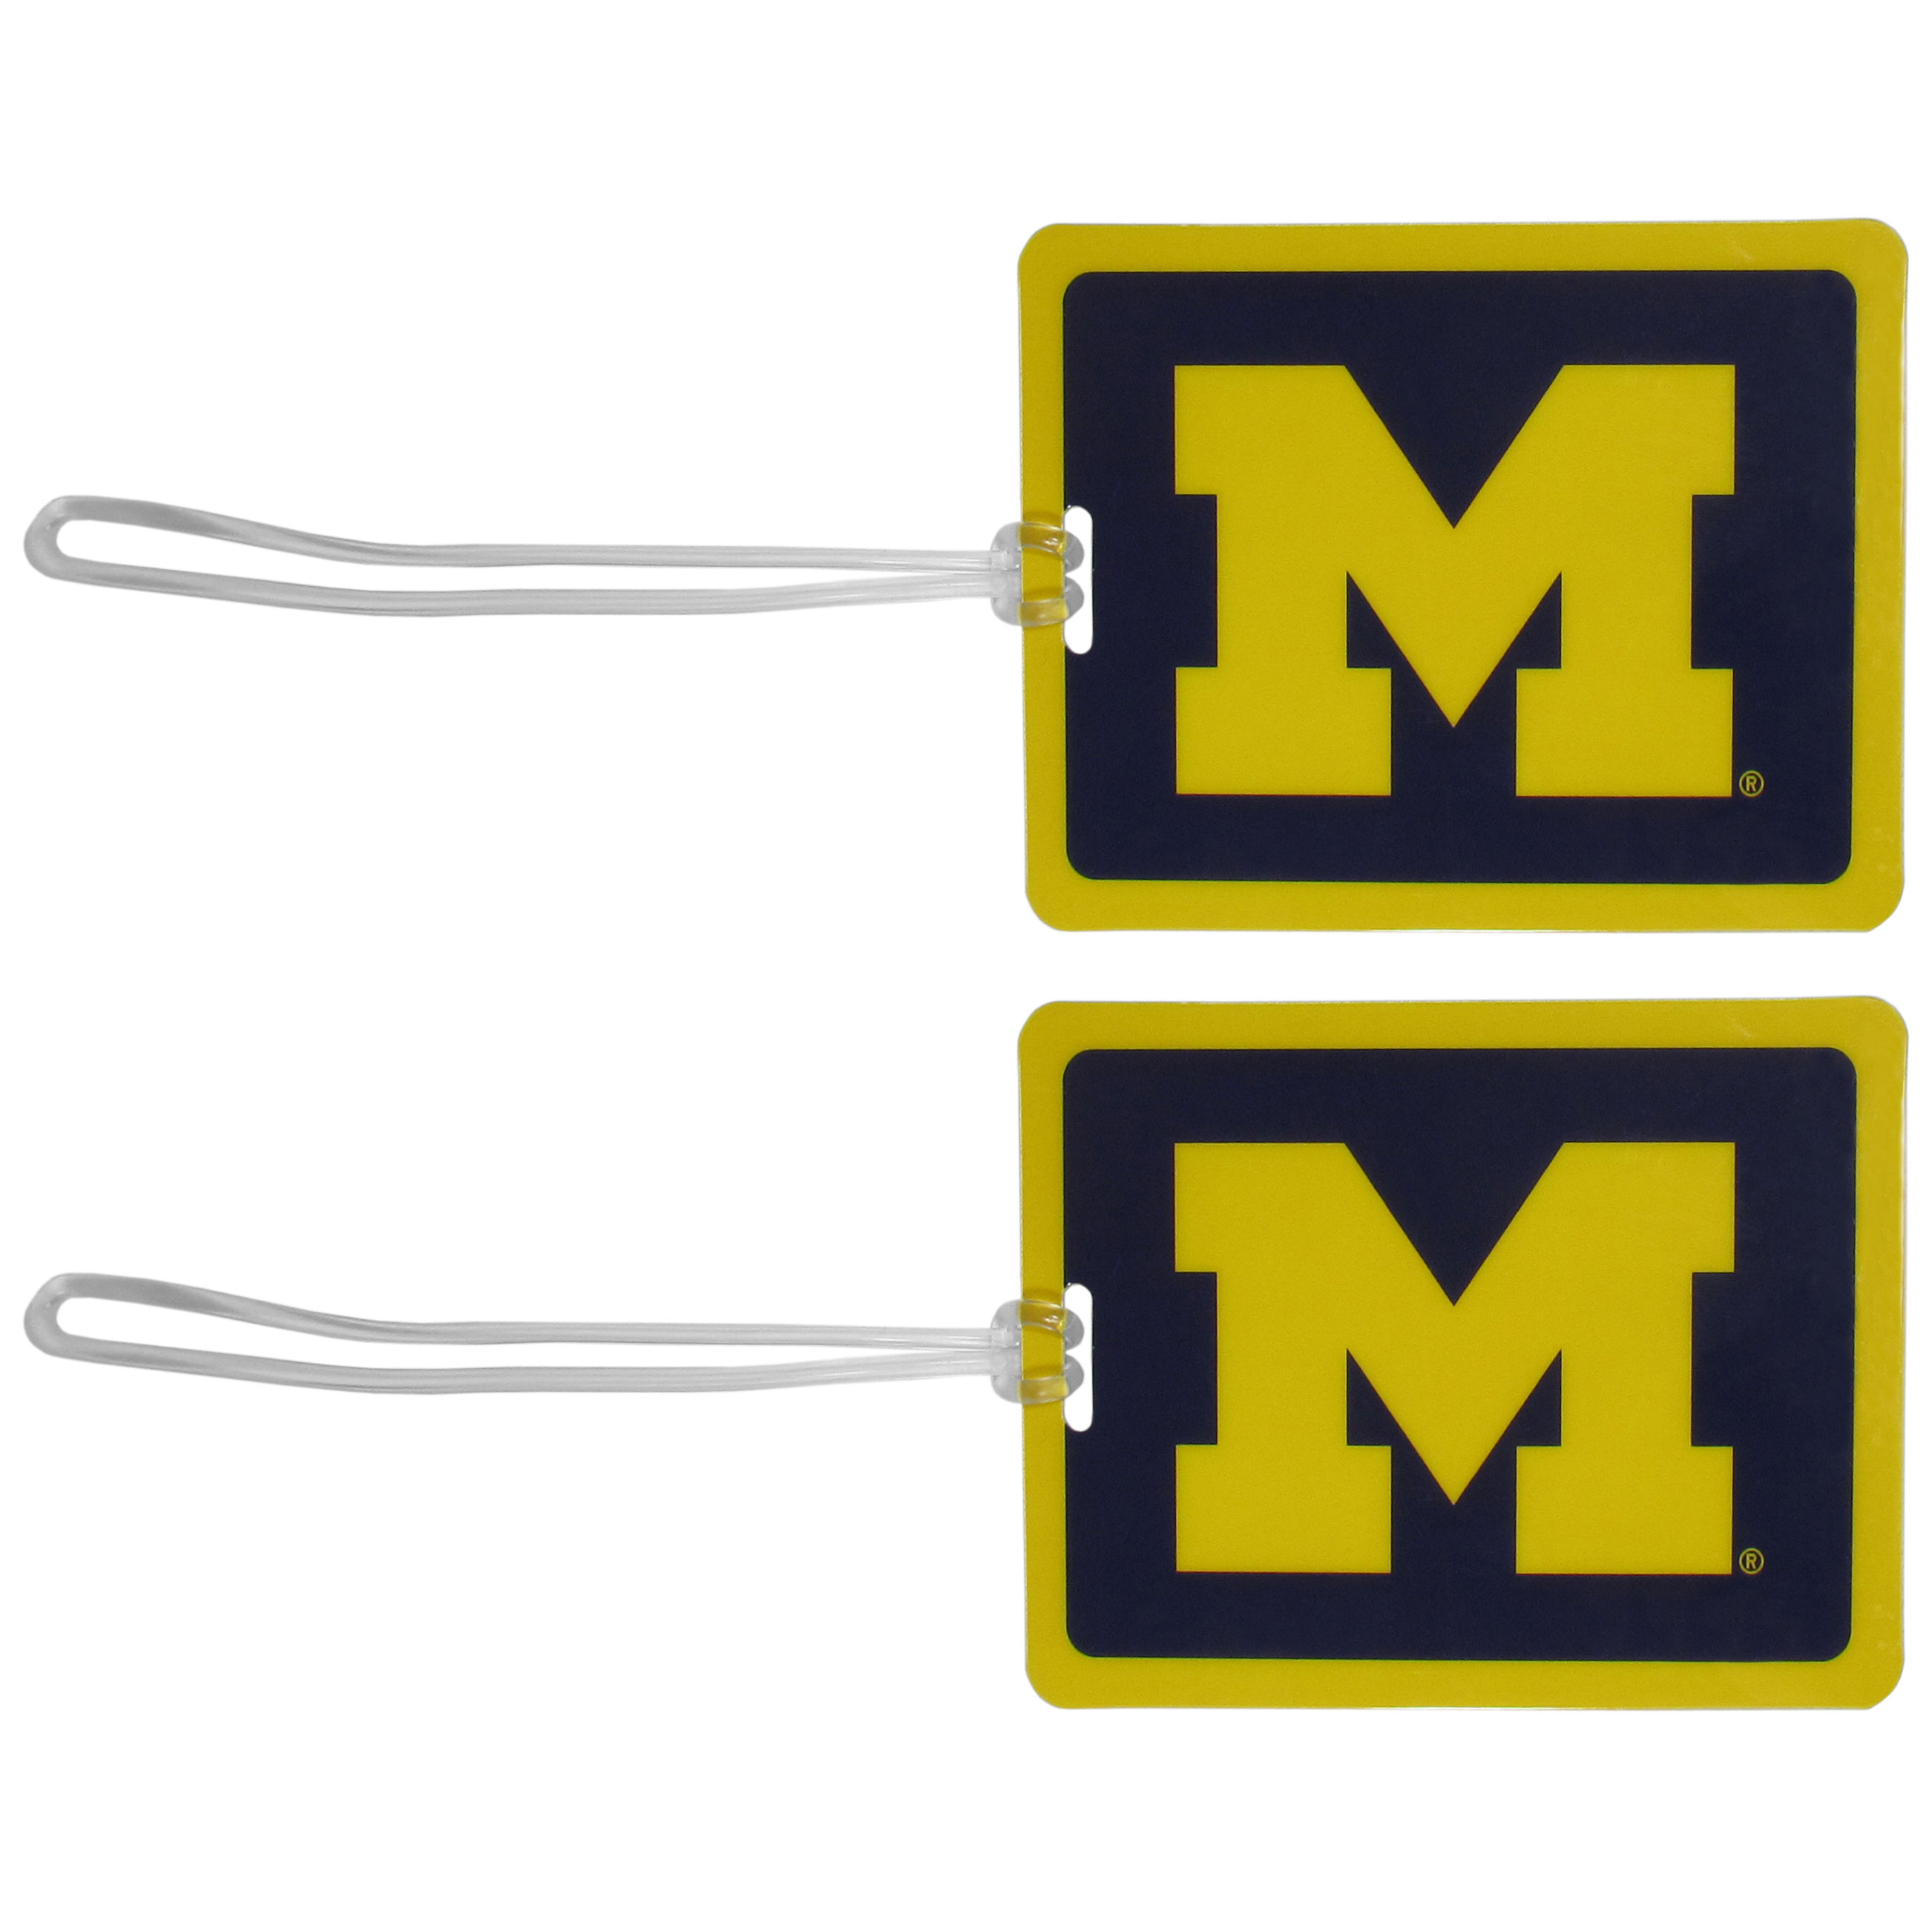 Michigan Wolverines Vinyl Luggage Tag, 2pk - Tired of trying to spot your suitcase or bag in a sea of luggage? Try our large and colorful Michigan Wolverines luggage tags. The tag is 4x3 inches and has a 5 inch cord to attach it easily to your bags, backpacks or luggage. The front of the tag features the team logo in a bright, team colored background and you can write you name, address and phone number on the back of the tag.